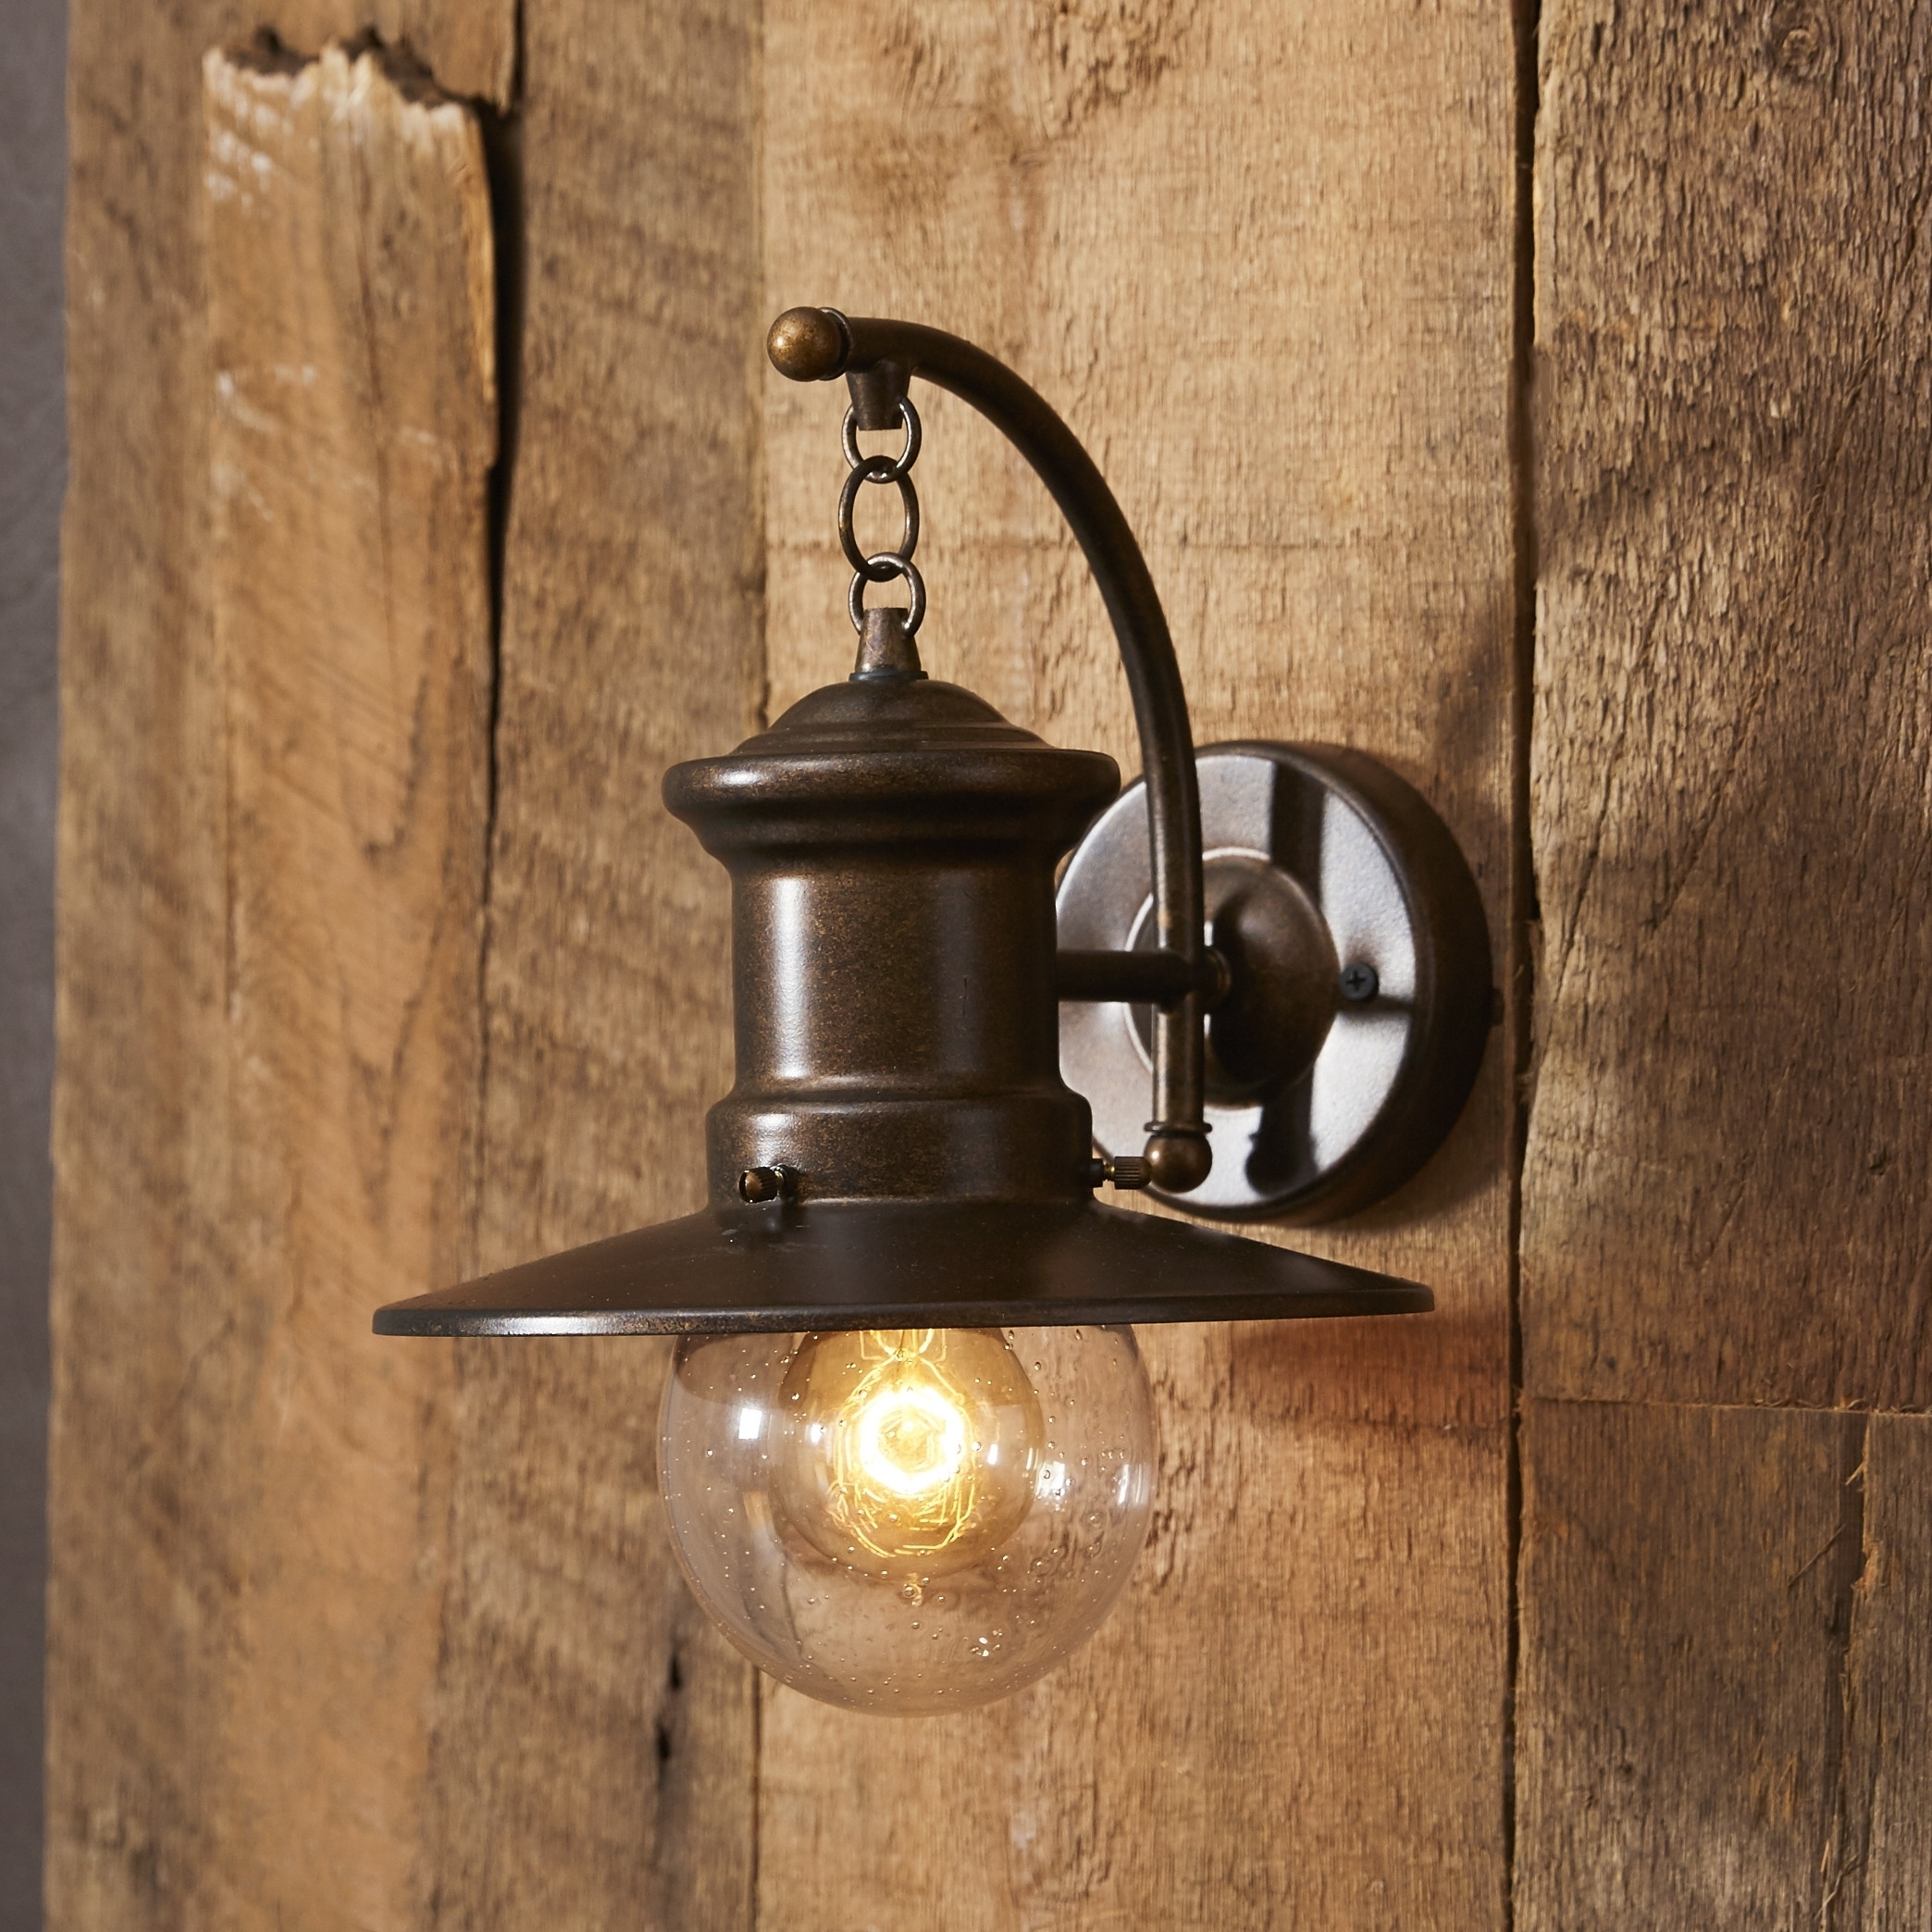 Glamorous Barn Light Sconce 2017 Design Outdoor Barn Lights For For Well Known Outdoor Hanging Barn Lights (View 8 of 20)